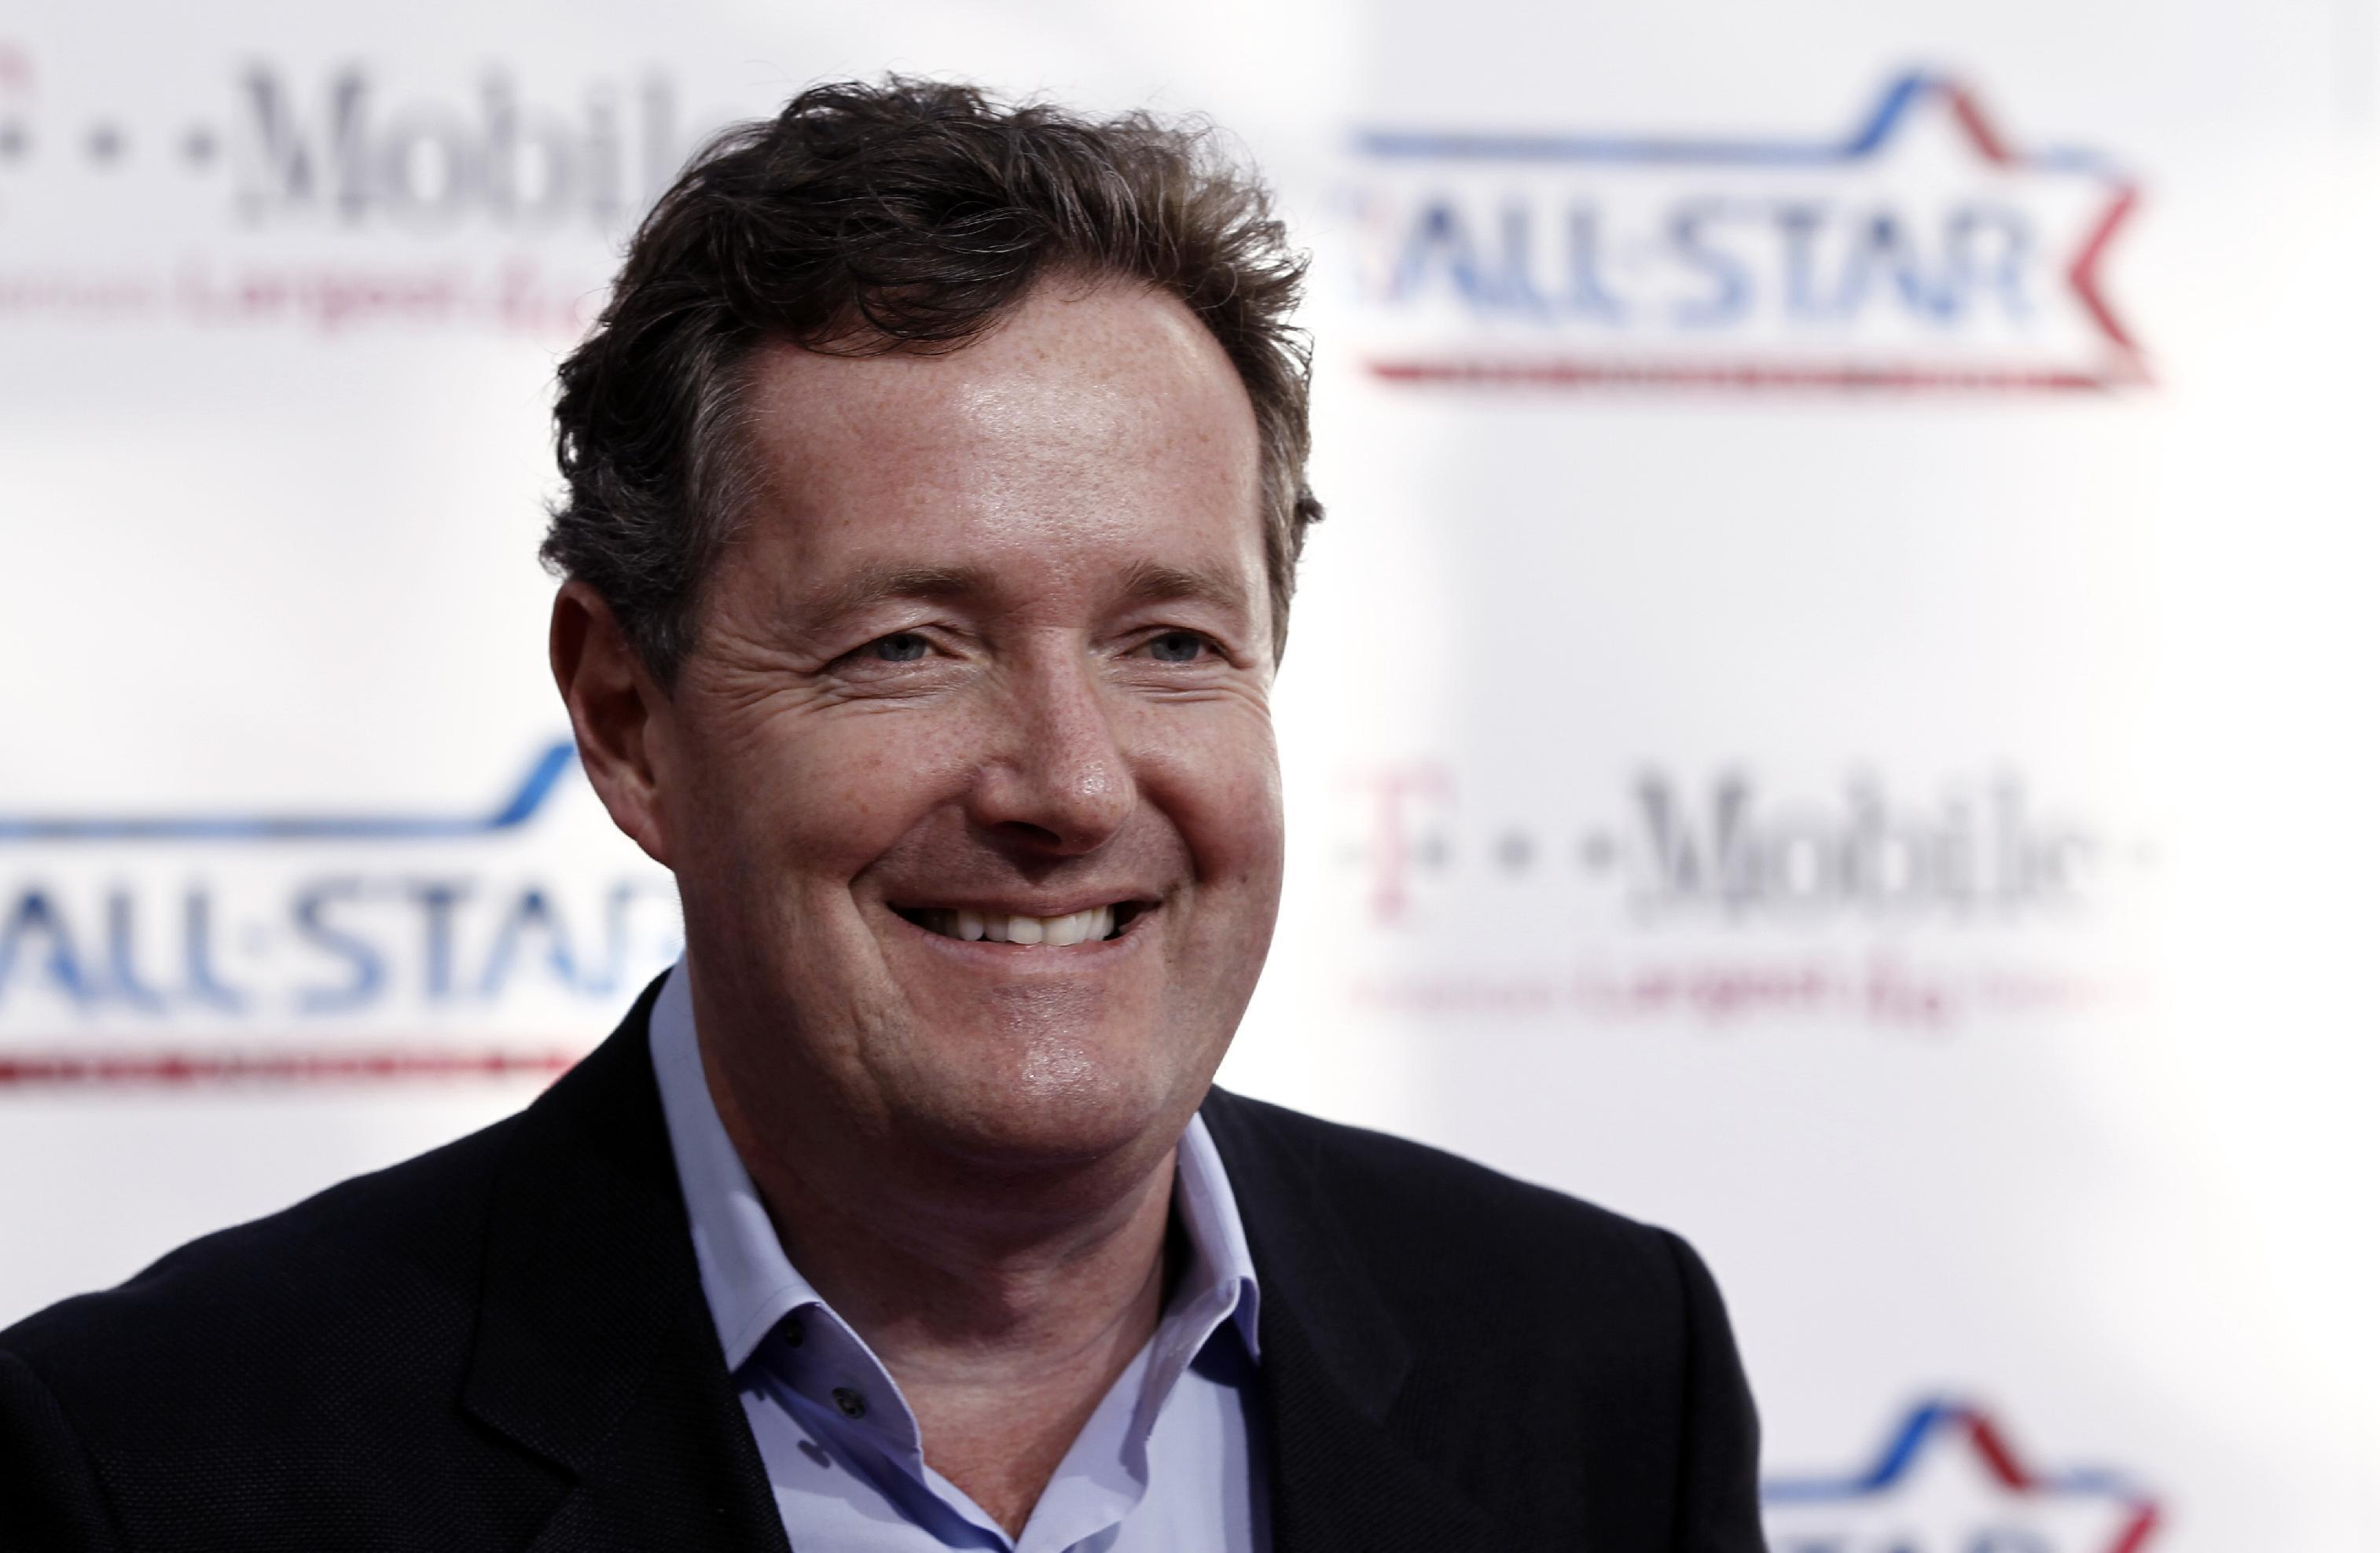 Piers Morgan quizzed by police over tabloid phone hacking